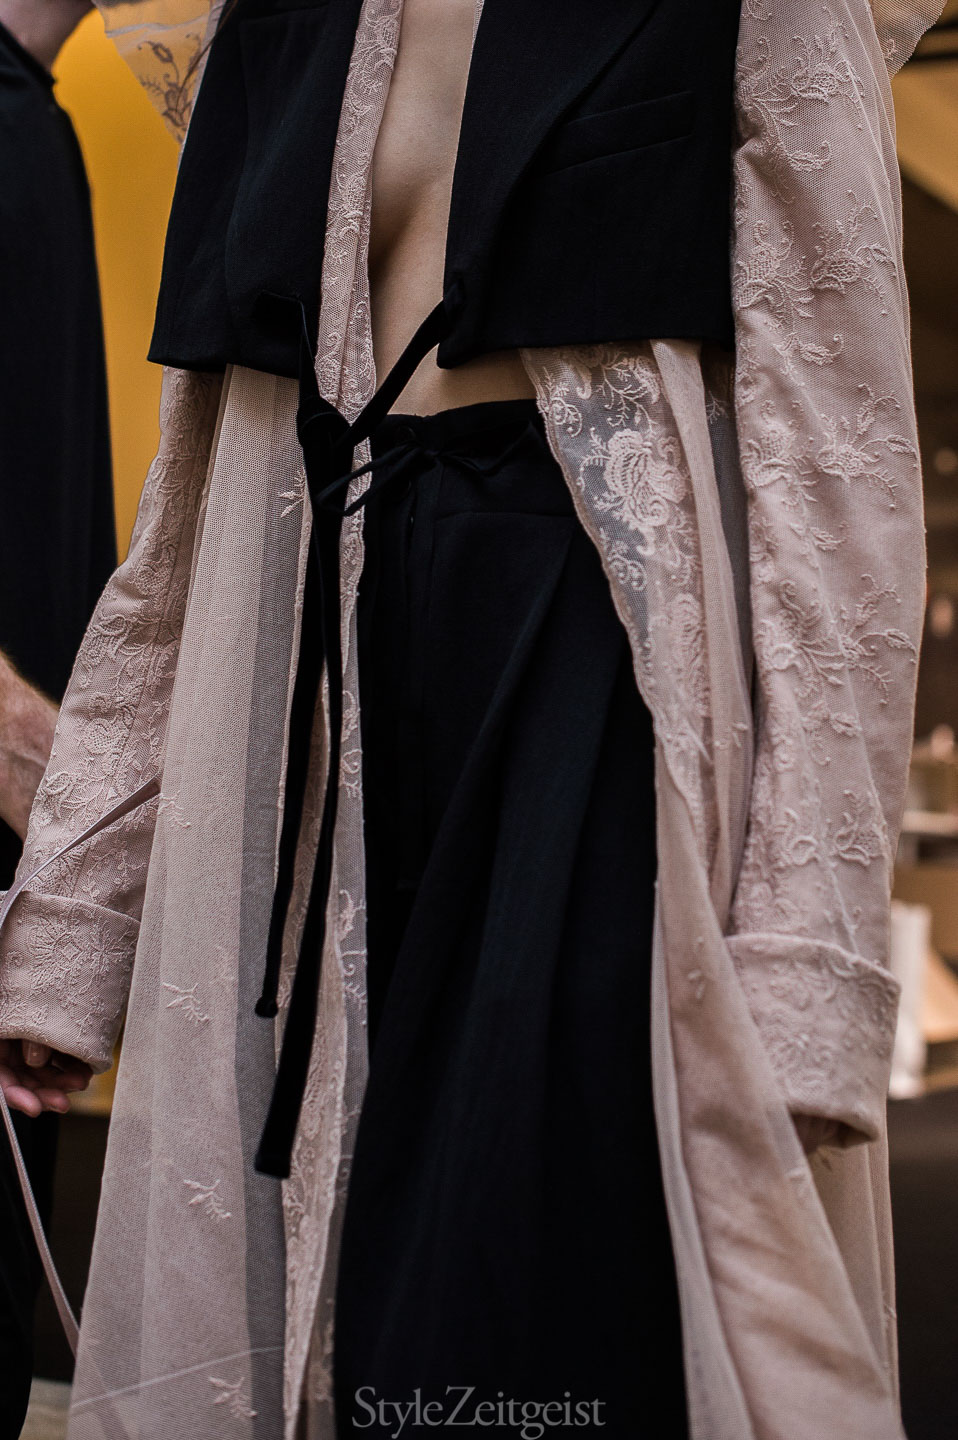 StyleZeitgeist Ann Demeulemeester F/W17 Women's - Paris Backstage Fashion    StyleZeitgeist Ann Demeulemeester F/W17 Women's - Paris Backstage Fashion    StyleZeitgeist Ann Demeulemeester F/W17 Women's - Paris Backstage Fashion    StyleZeitgeist Ann Demeulemeester F/W17 Women's - Paris Backstage Fashion    StyleZeitgeist Ann Demeulemeester F/W17 Women's - Paris Backstage Fashion    StyleZeitgeist Ann Demeulemeester F/W17 Women's - Paris Backstage Fashion    StyleZeitgeist Ann Demeulemeester F/W17 Women's - Paris Backstage Fashion    StyleZeitgeist Ann Demeulemeester F/W17 Women's - Paris Backstage Fashion    StyleZeitgeist Ann Demeulemeester F/W17 Women's - Paris Backstage Fashion    StyleZeitgeist Ann Demeulemeester F/W17 Women's - Paris Backstage Fashion